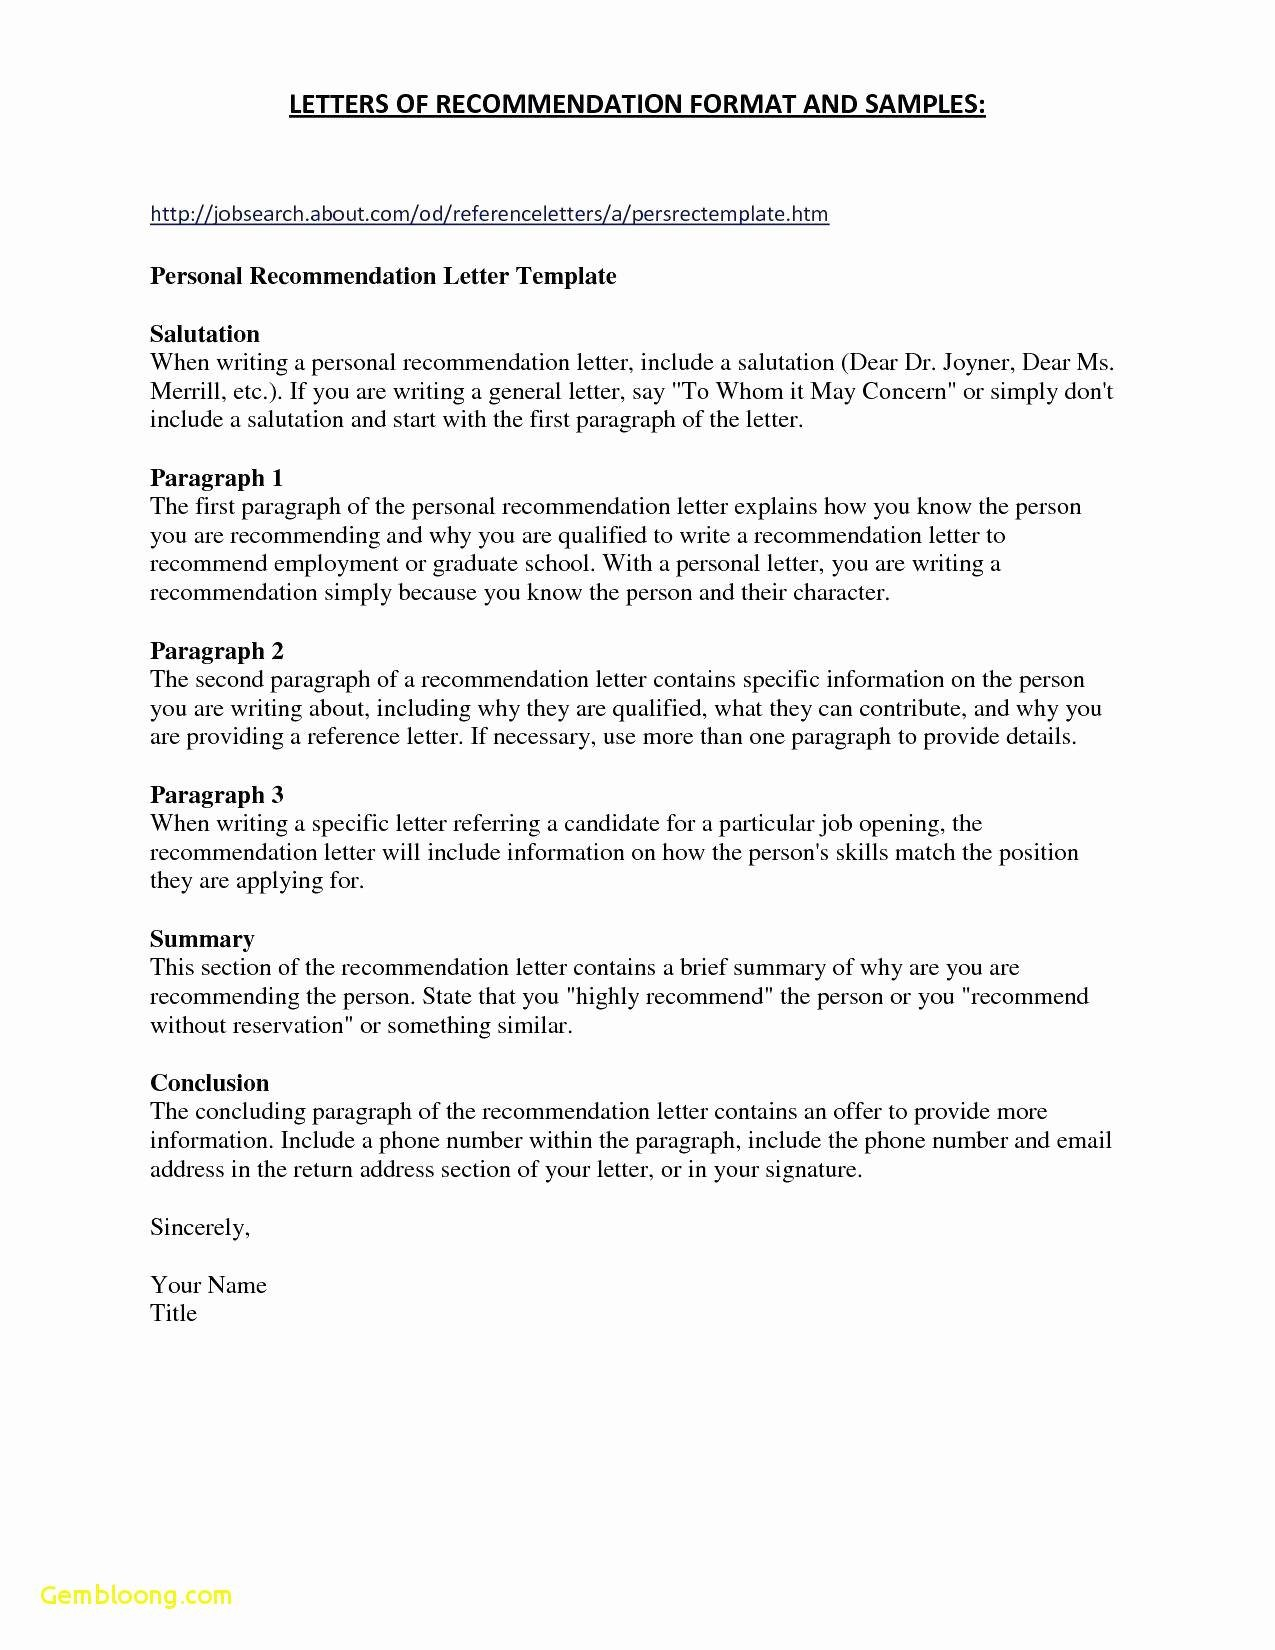 Independent Contractor Offer Letter Template - Ceo Employment Contract Template